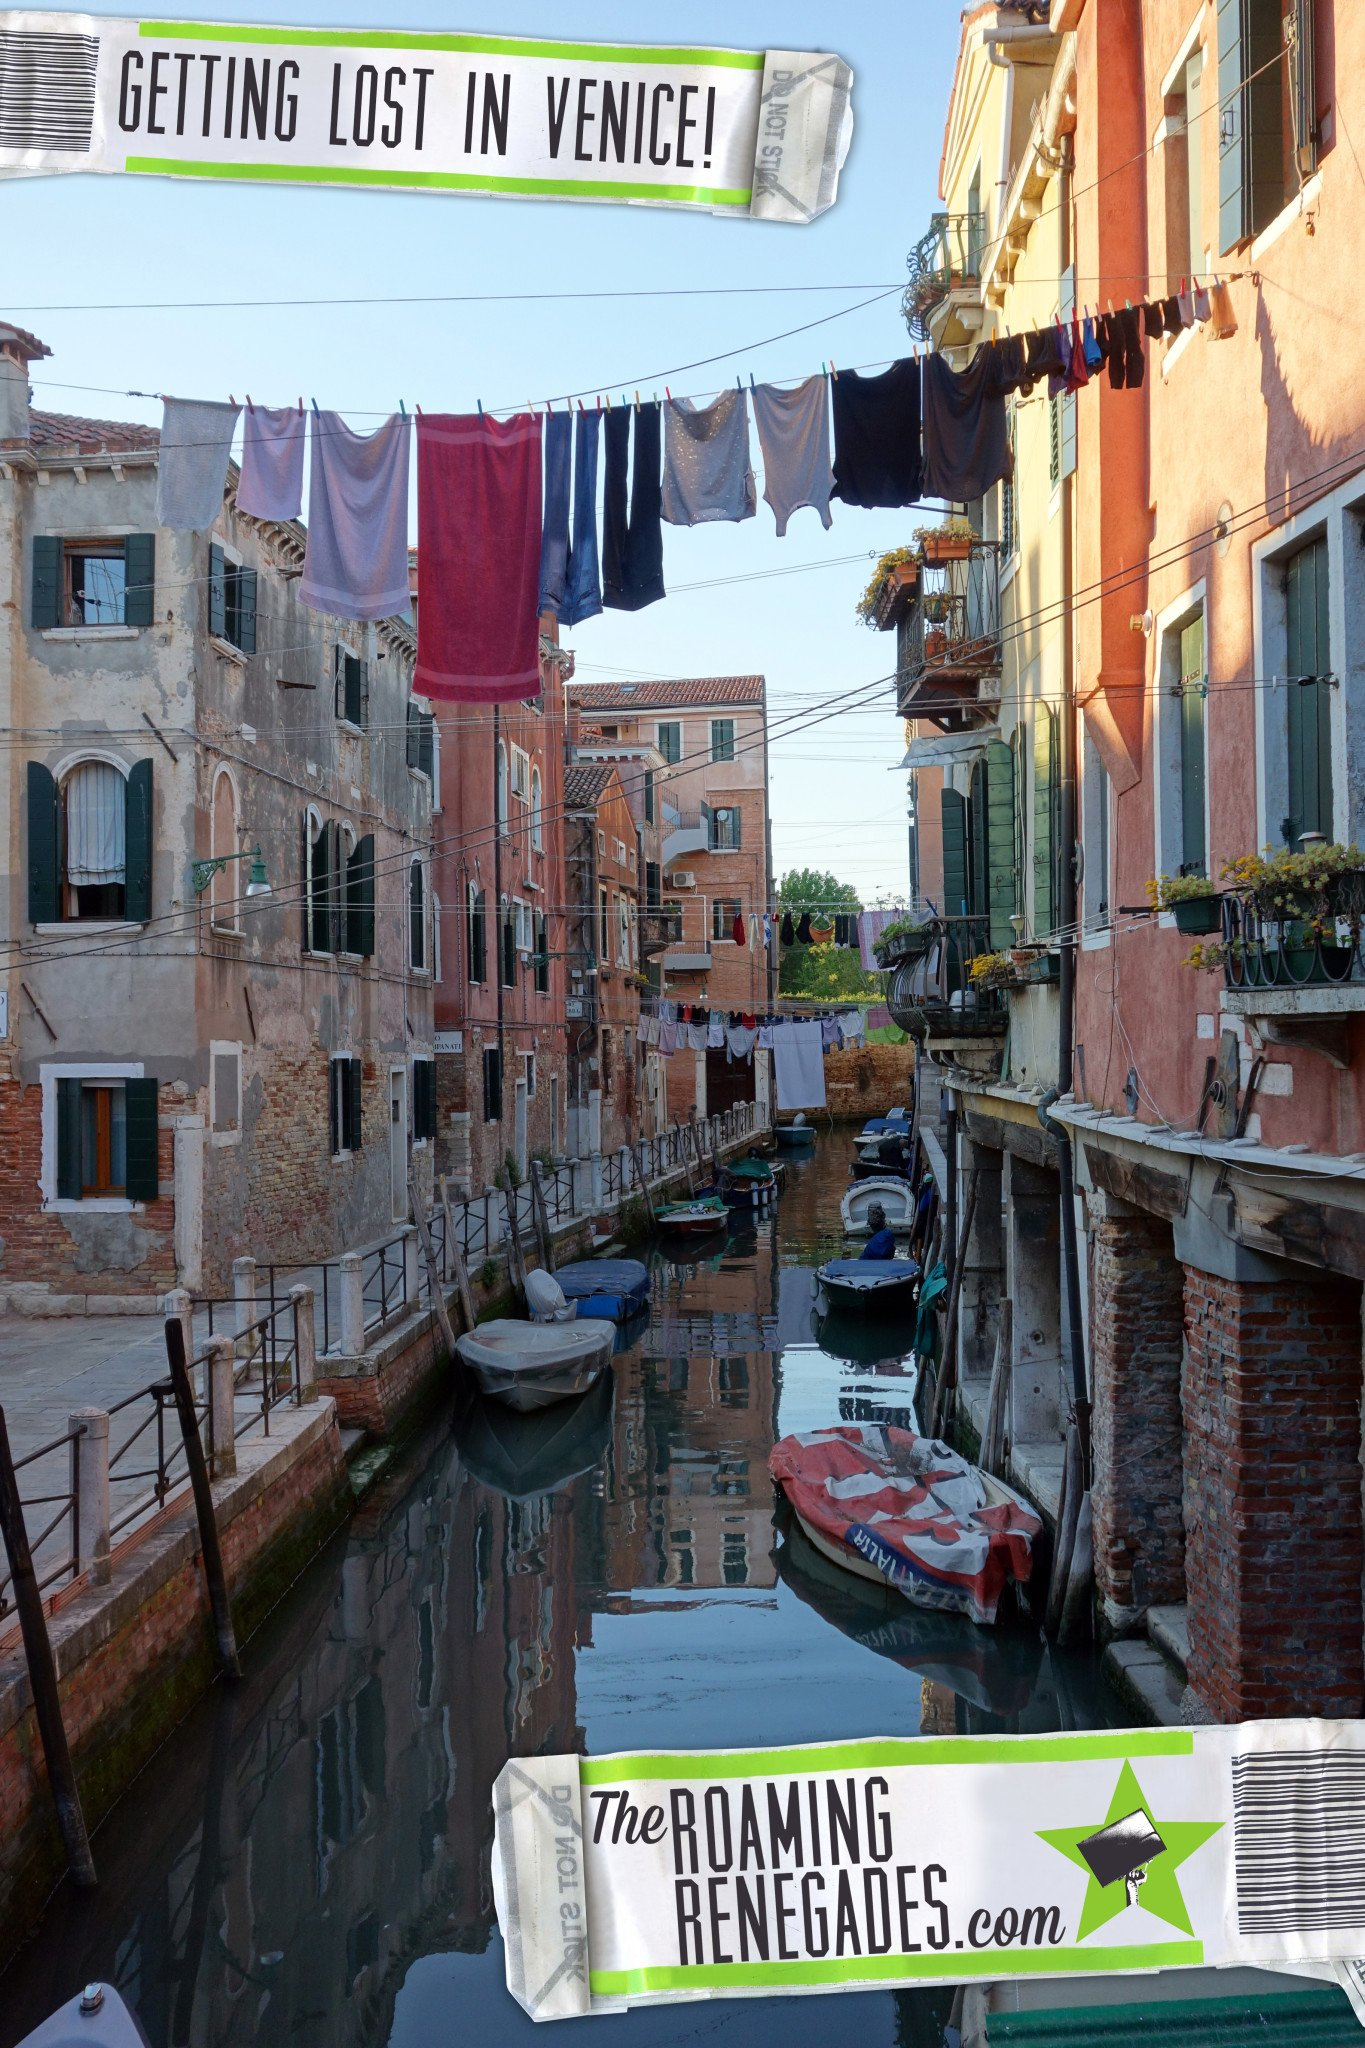 Getting lost on purpose in Venice and discovering Venetian life! https://theroamingrenegades.com/2016/05/getting-lost-on-purpose-in-venice-and-discovering-venetian-life.html